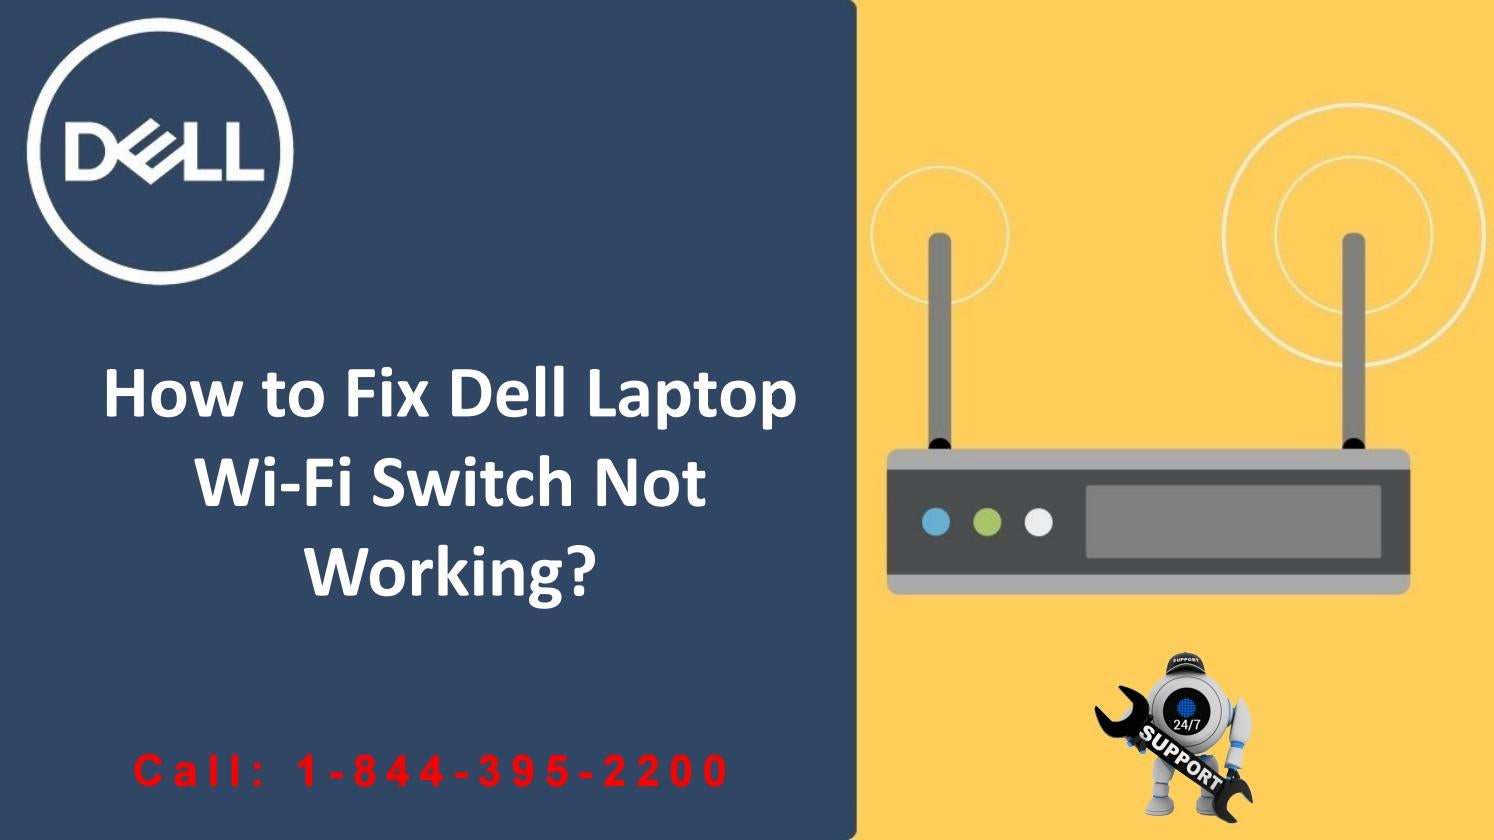 How to Fix Dell Laptop WiFi switch not working by Dell